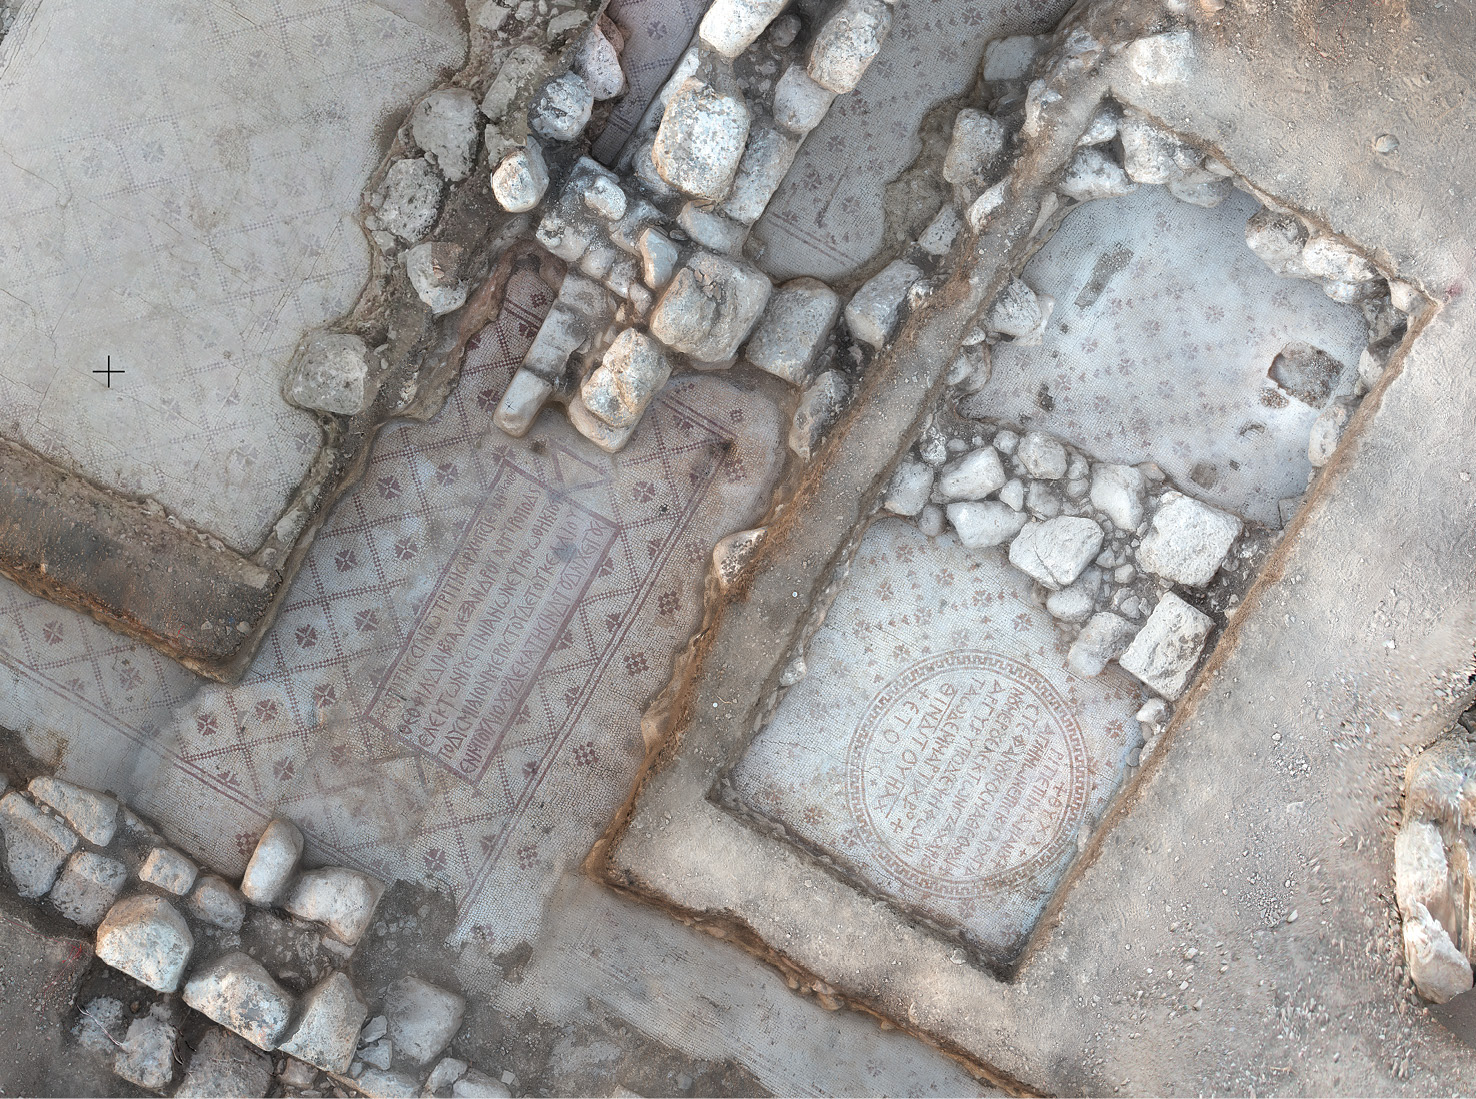 BELOW The mosaics in the 'Mosaic Hall'. Inscriptions date the floor to AD 576 and AD 591.